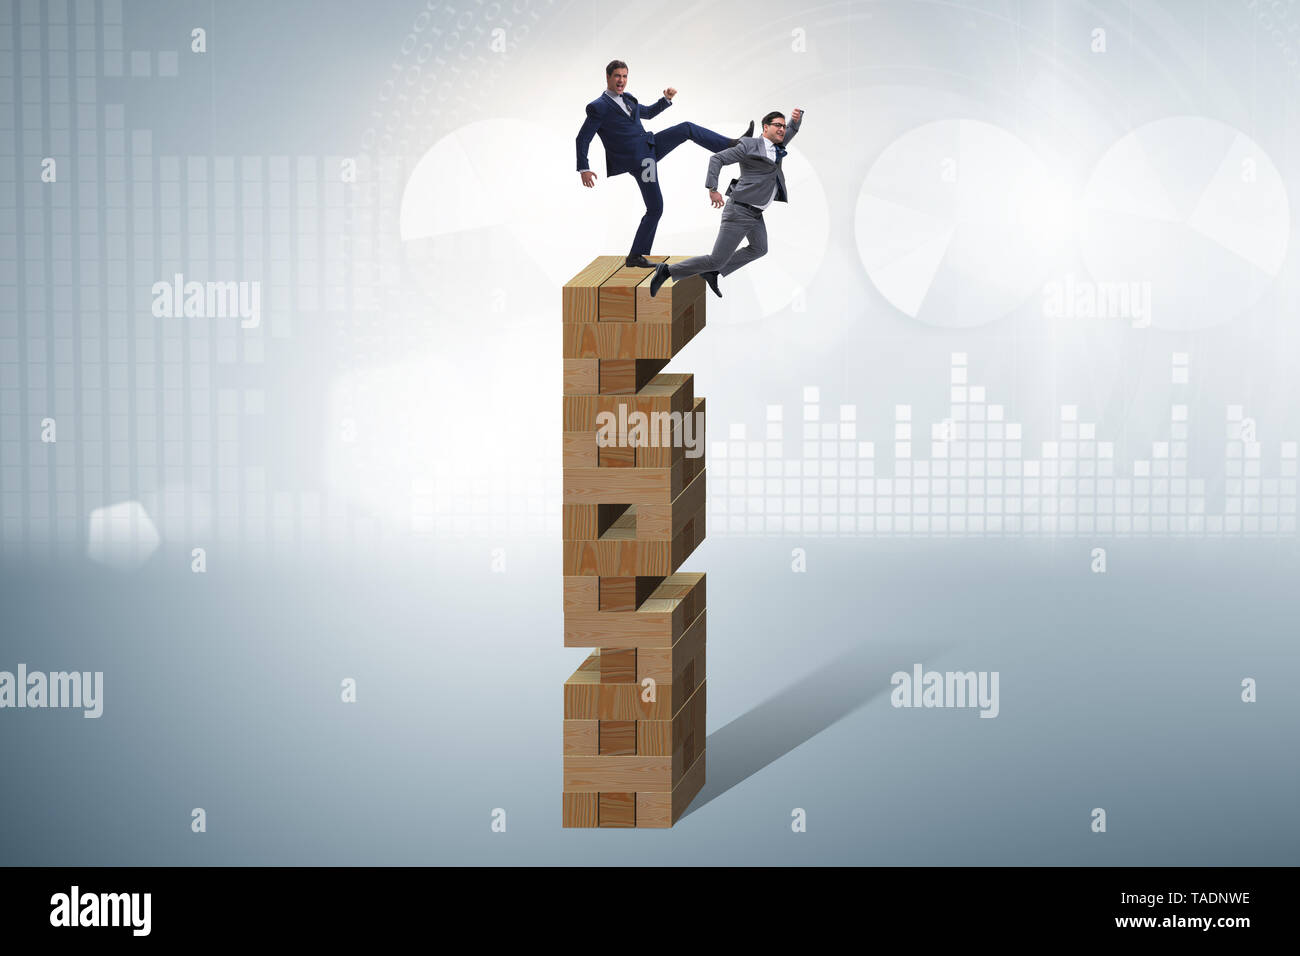 Business competition concept with two businessmen - Stock Image